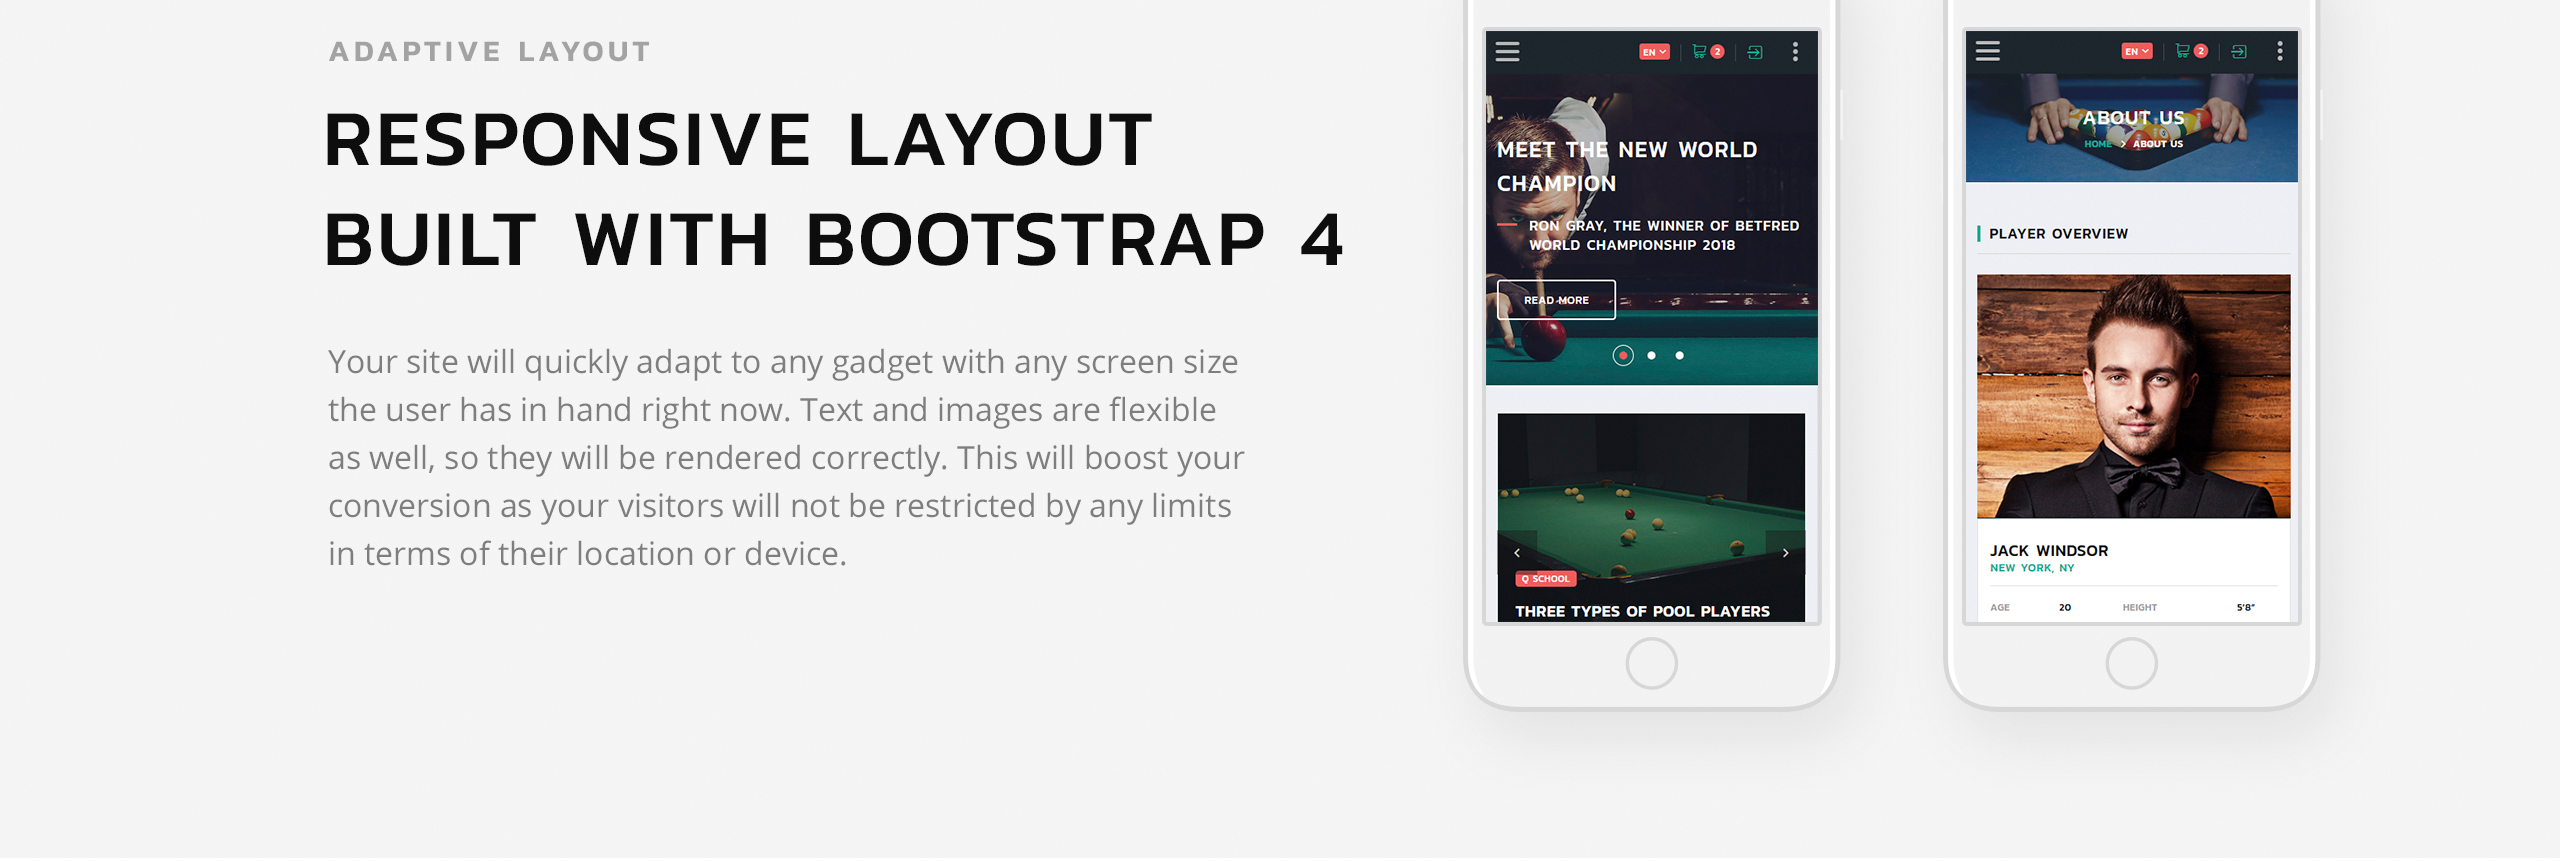 Snooker Website Template